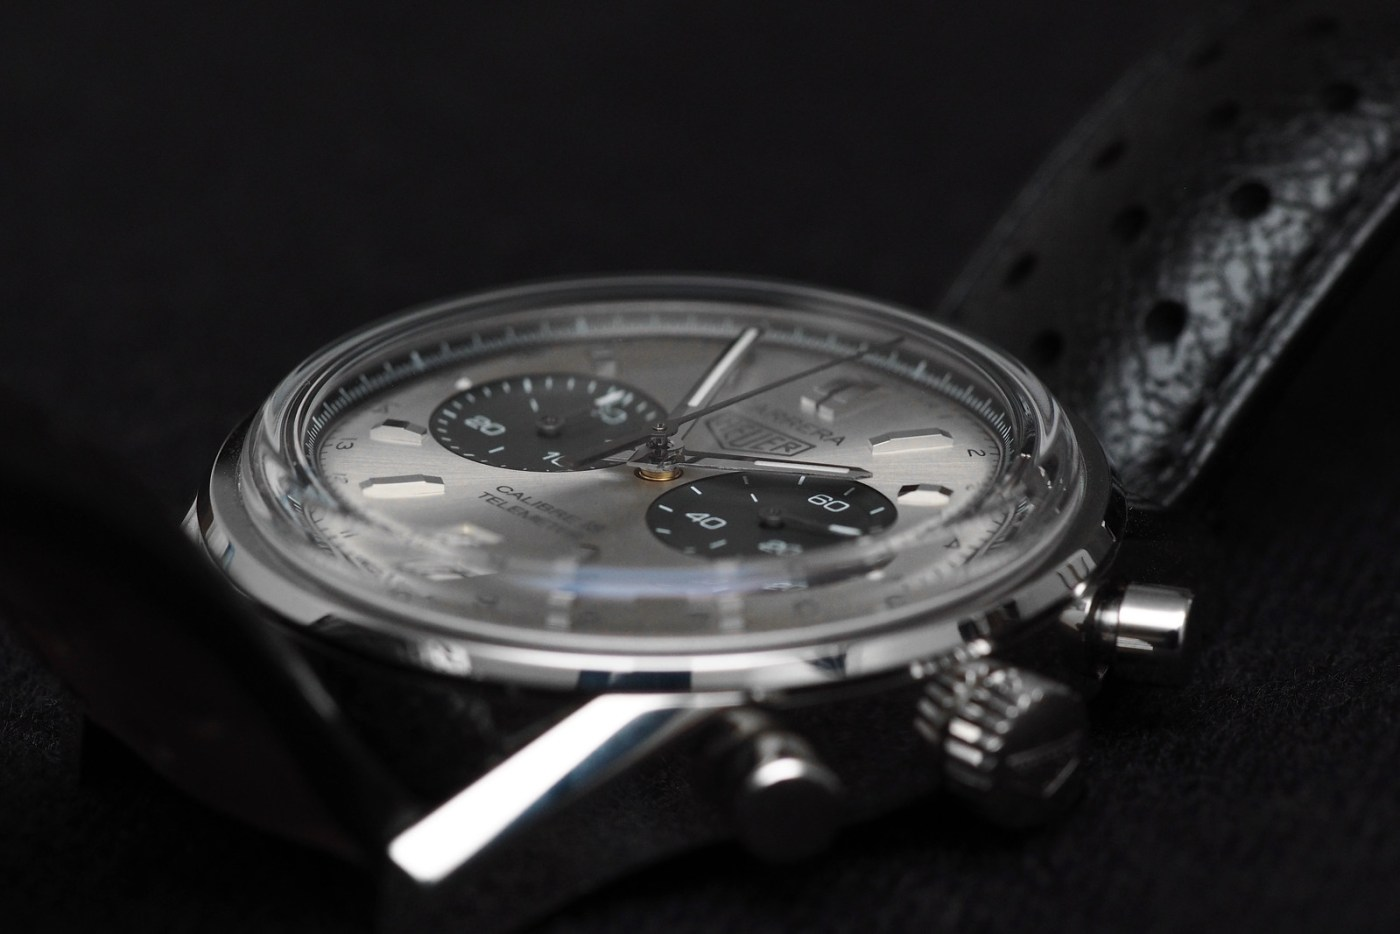 TAG Heuer Carrera Calibre 18 Automatic Chronograph domed crystal